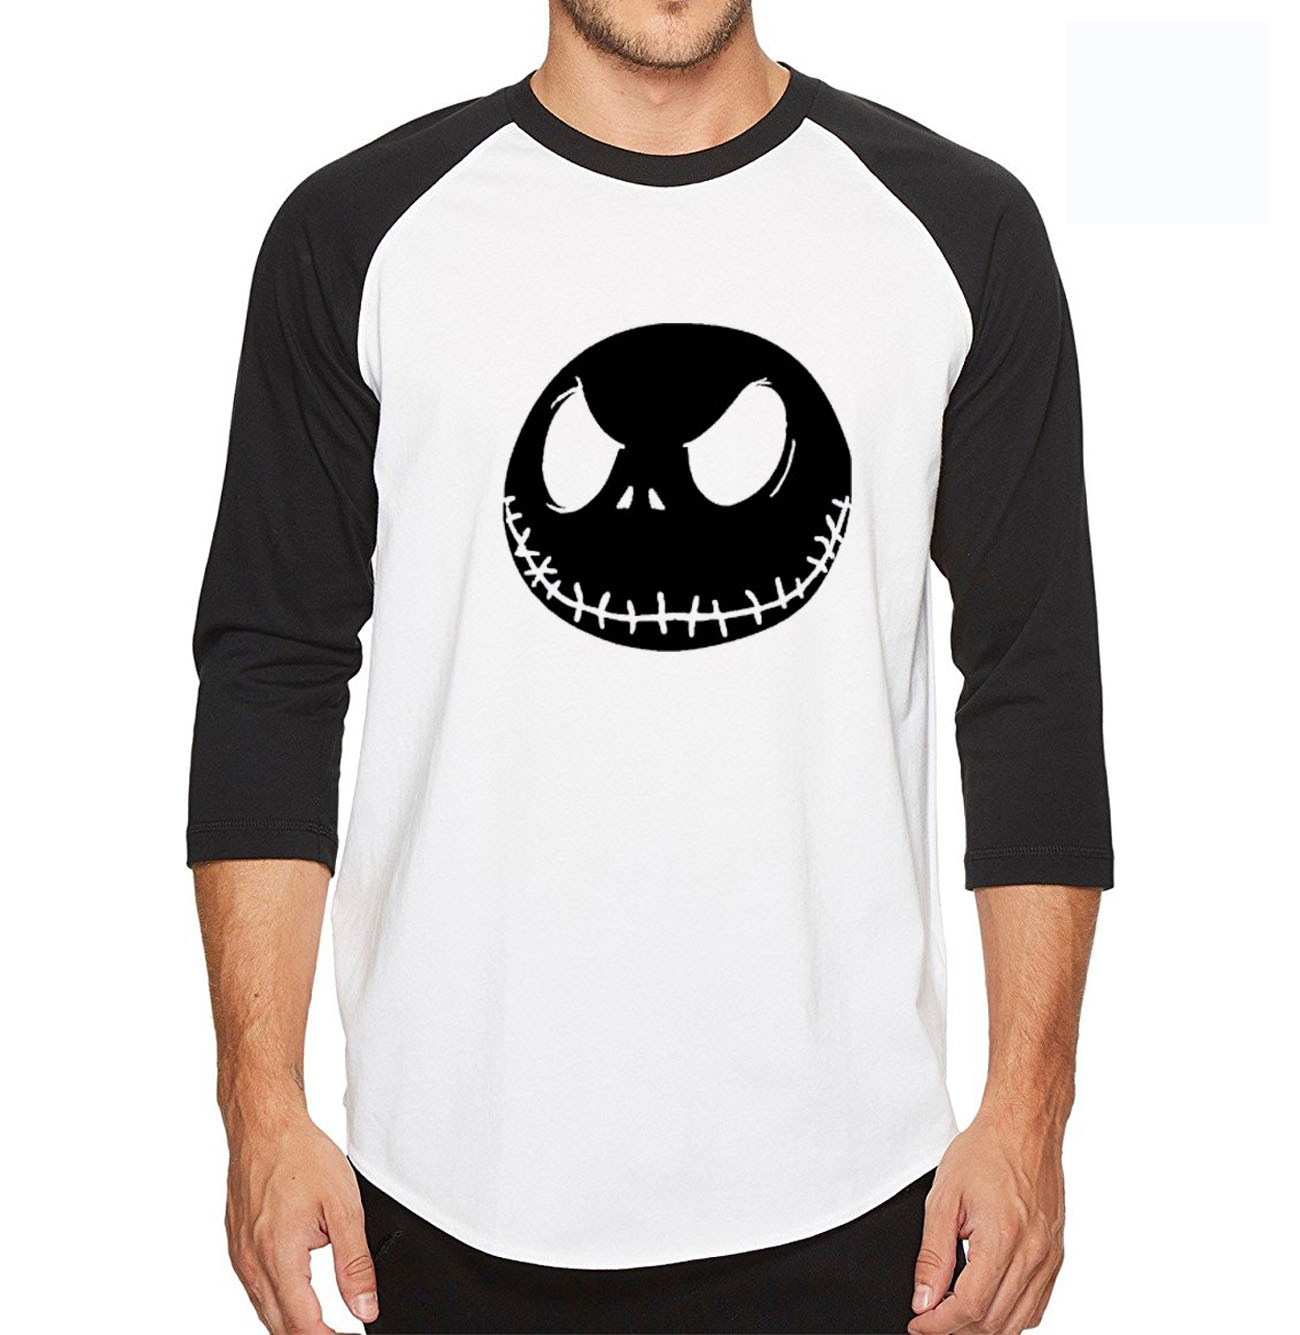 2018 summer men t shirt Nightmare Before Christmas Jack Skellington 3/4 sleeve tshirt cotton high quality raglan tee shirt men